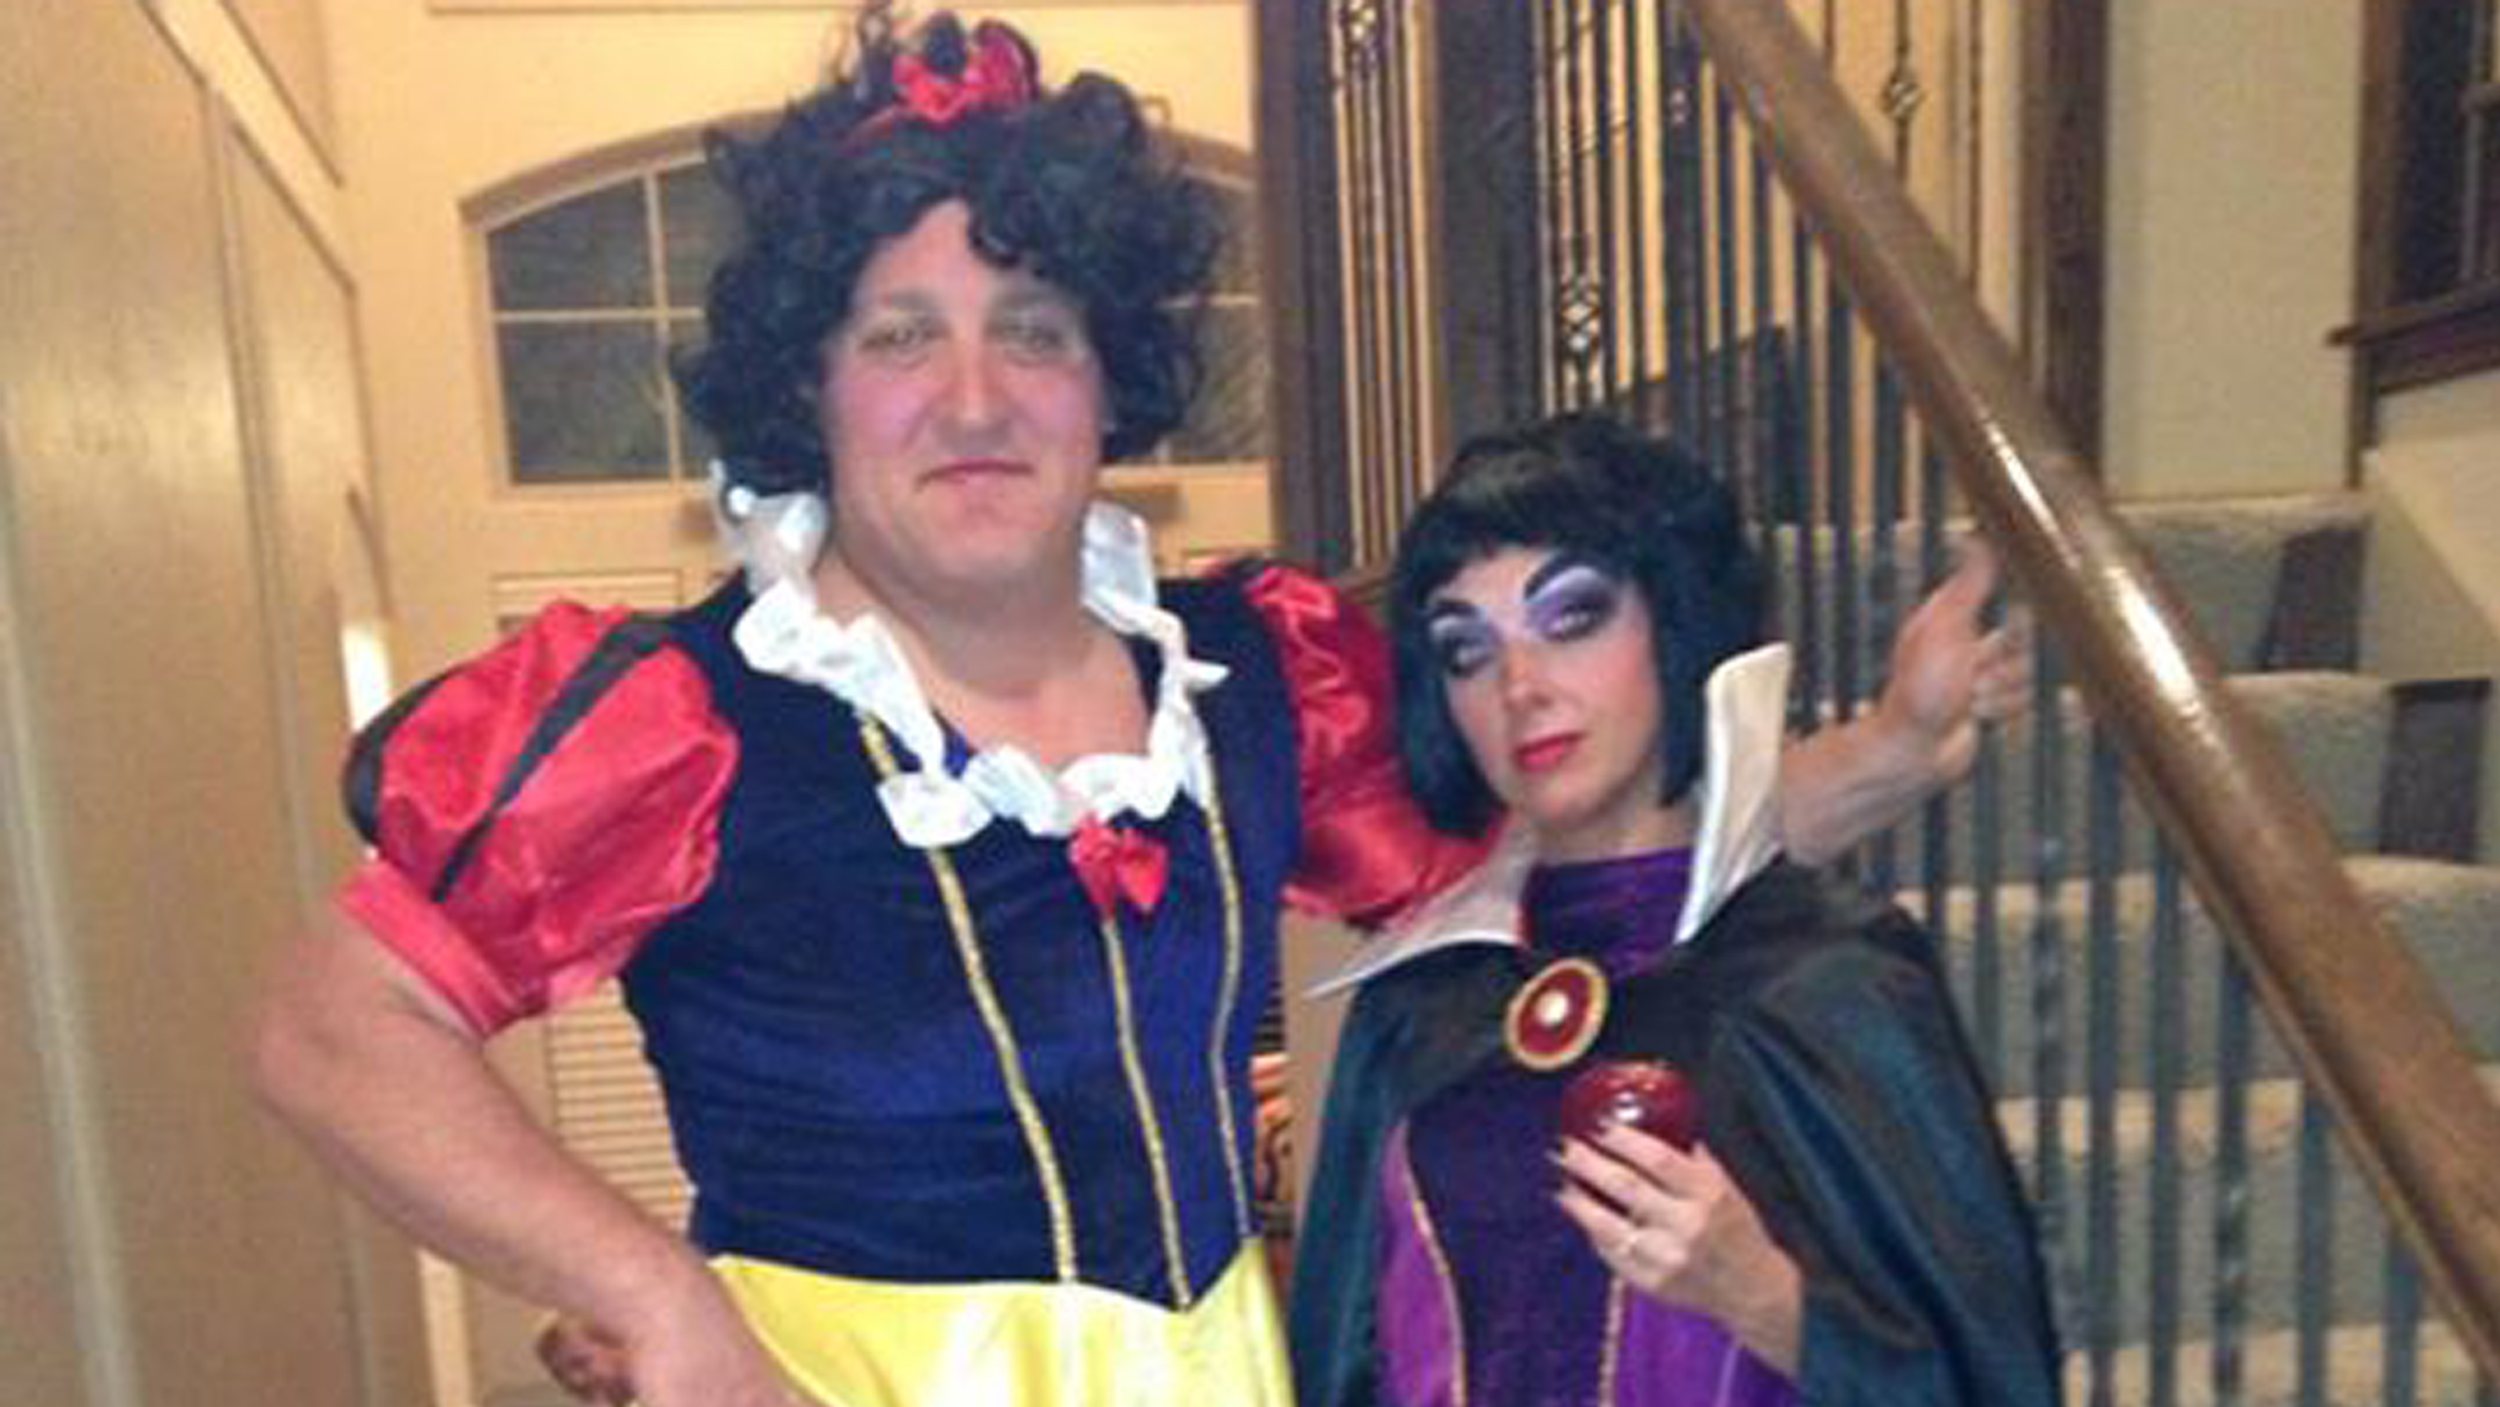 couples halloween costumes shrek and fiona plus 8 more todaycom - Famous Duos Halloween